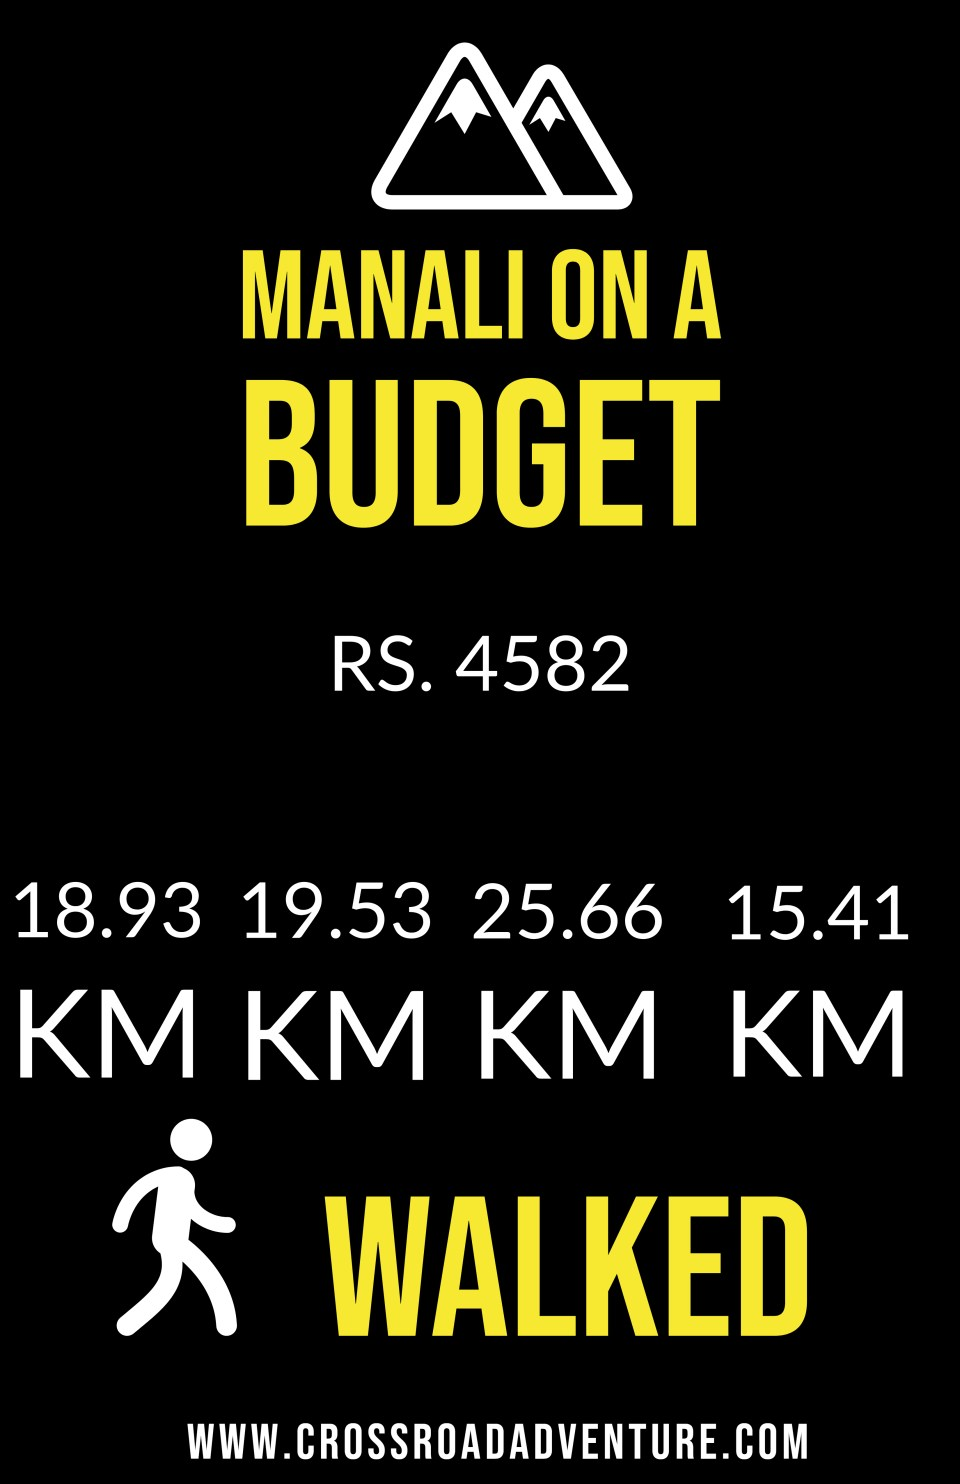 Solo Manali Trip on a Budget